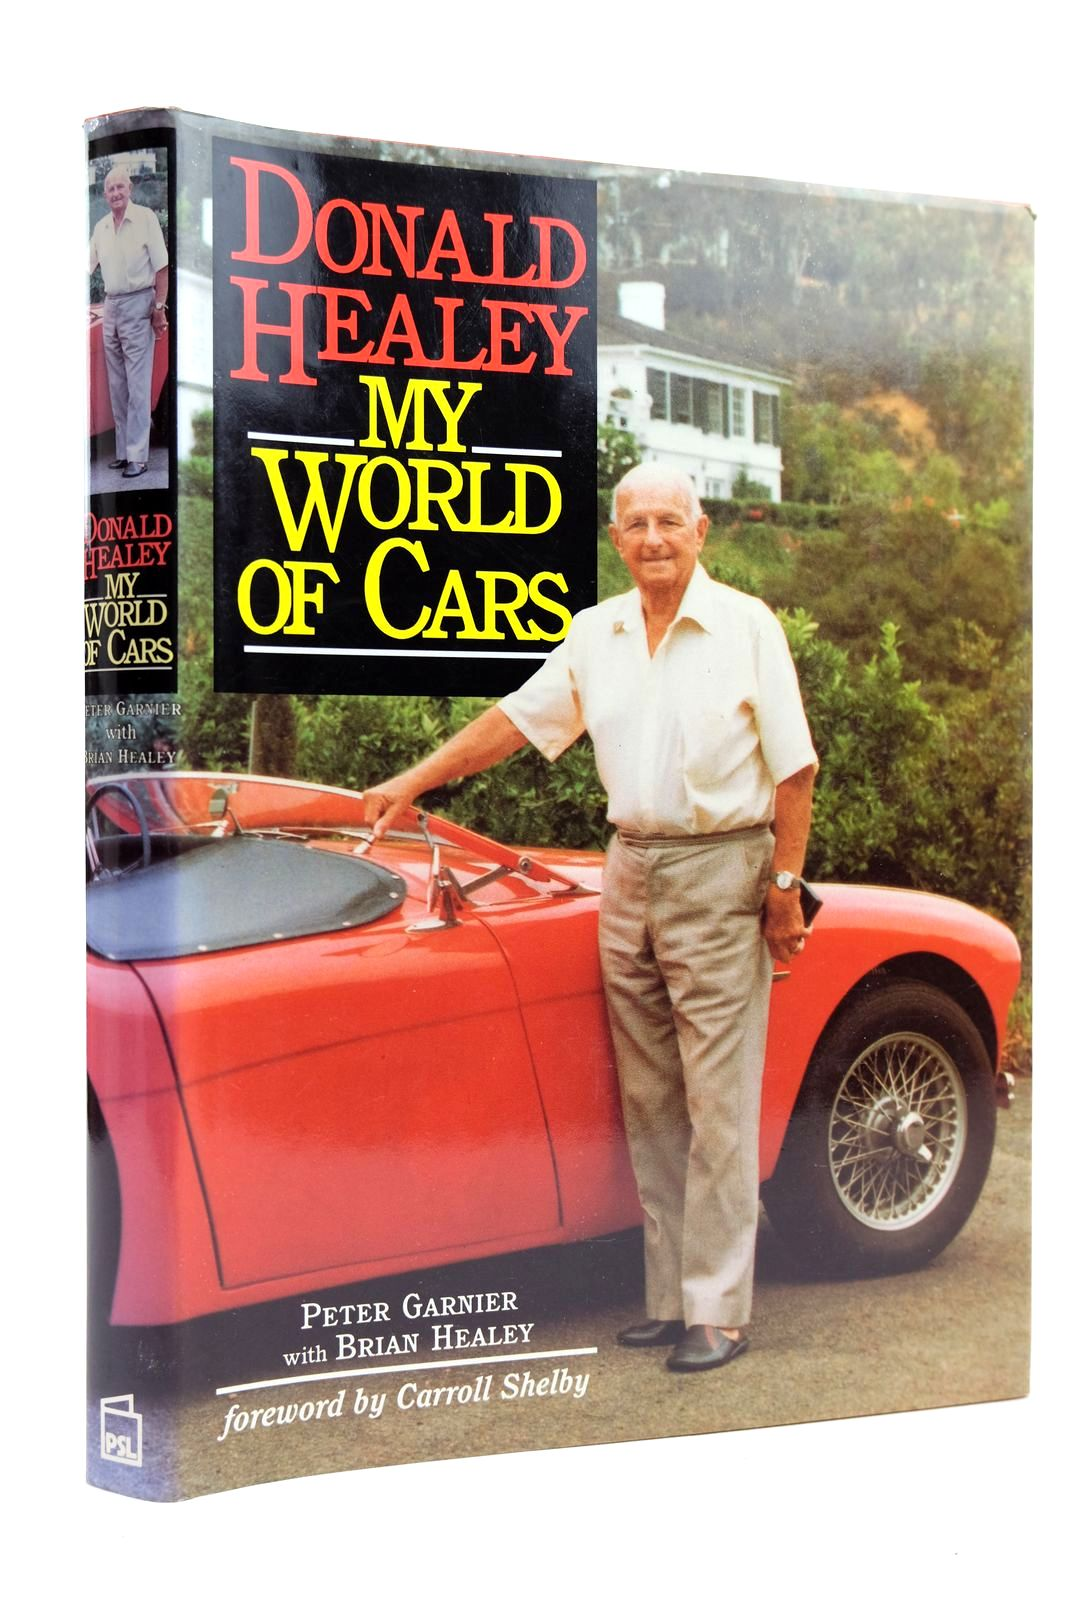 Photo of DONALD HEALEY MY WORLD OF CARS written by Garnier, Peter Healey, Brian published by Patrick Stephens Limited (STOCK CODE: 2131826)  for sale by Stella & Rose's Books